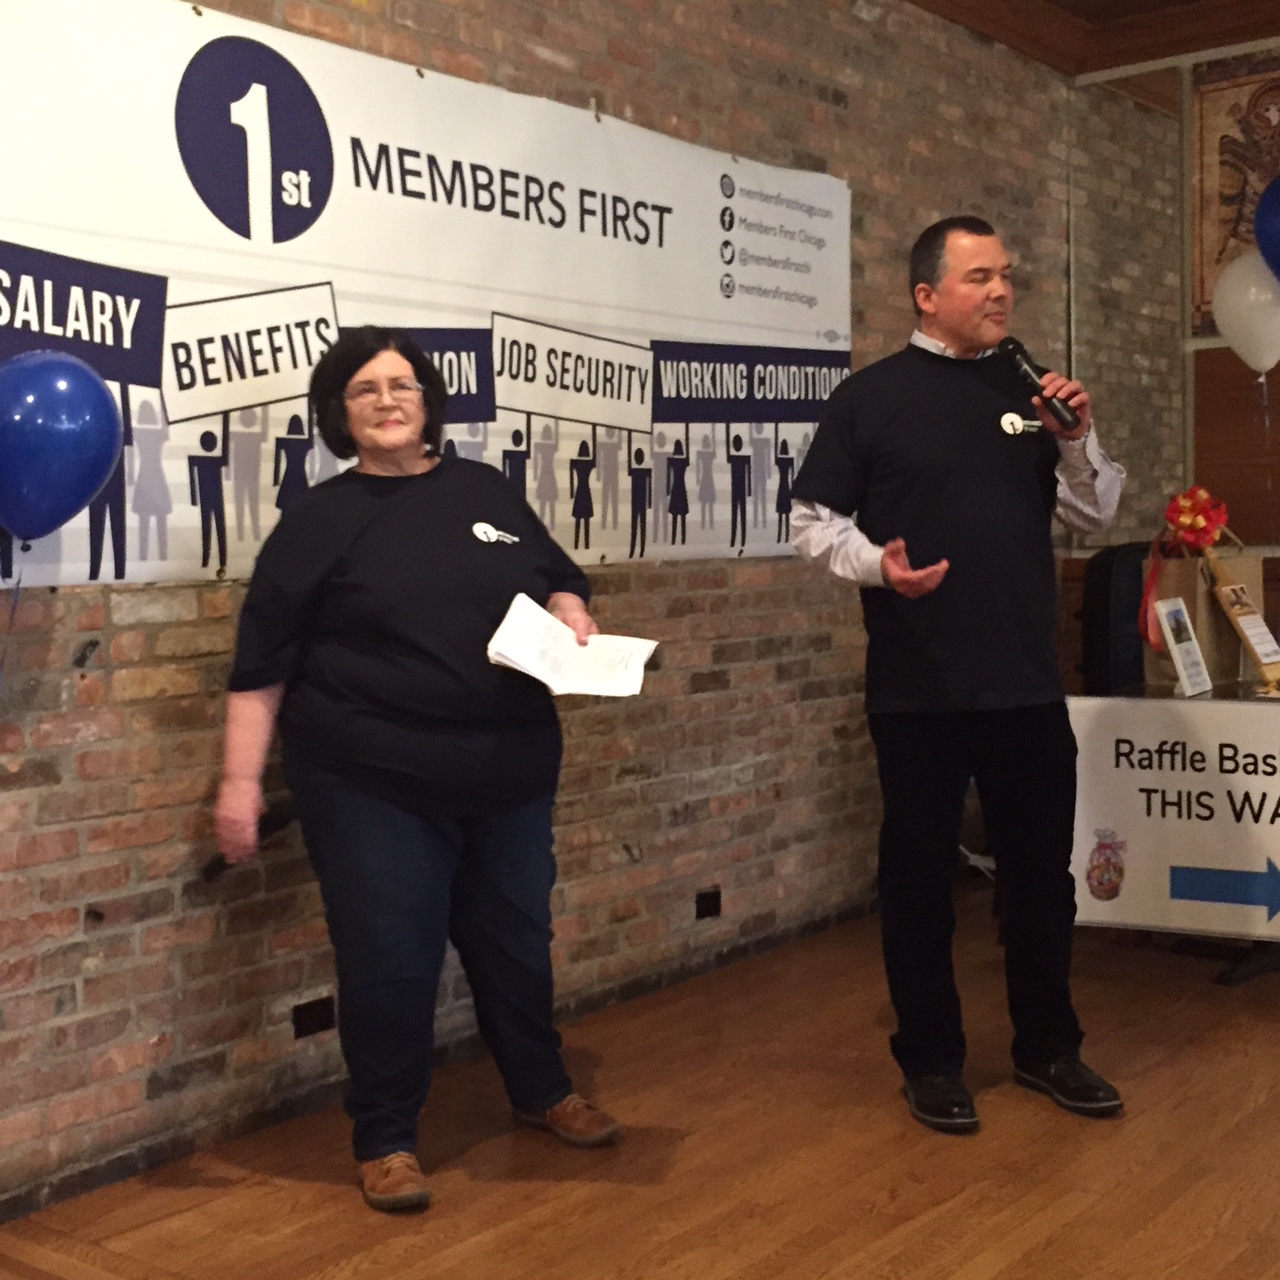 Therese Boyle and Victor Ochoa spoke to the crowd of more than 250 at the Members First event on Friday, April 13, 2018. Substance photo by Susan Hickey.